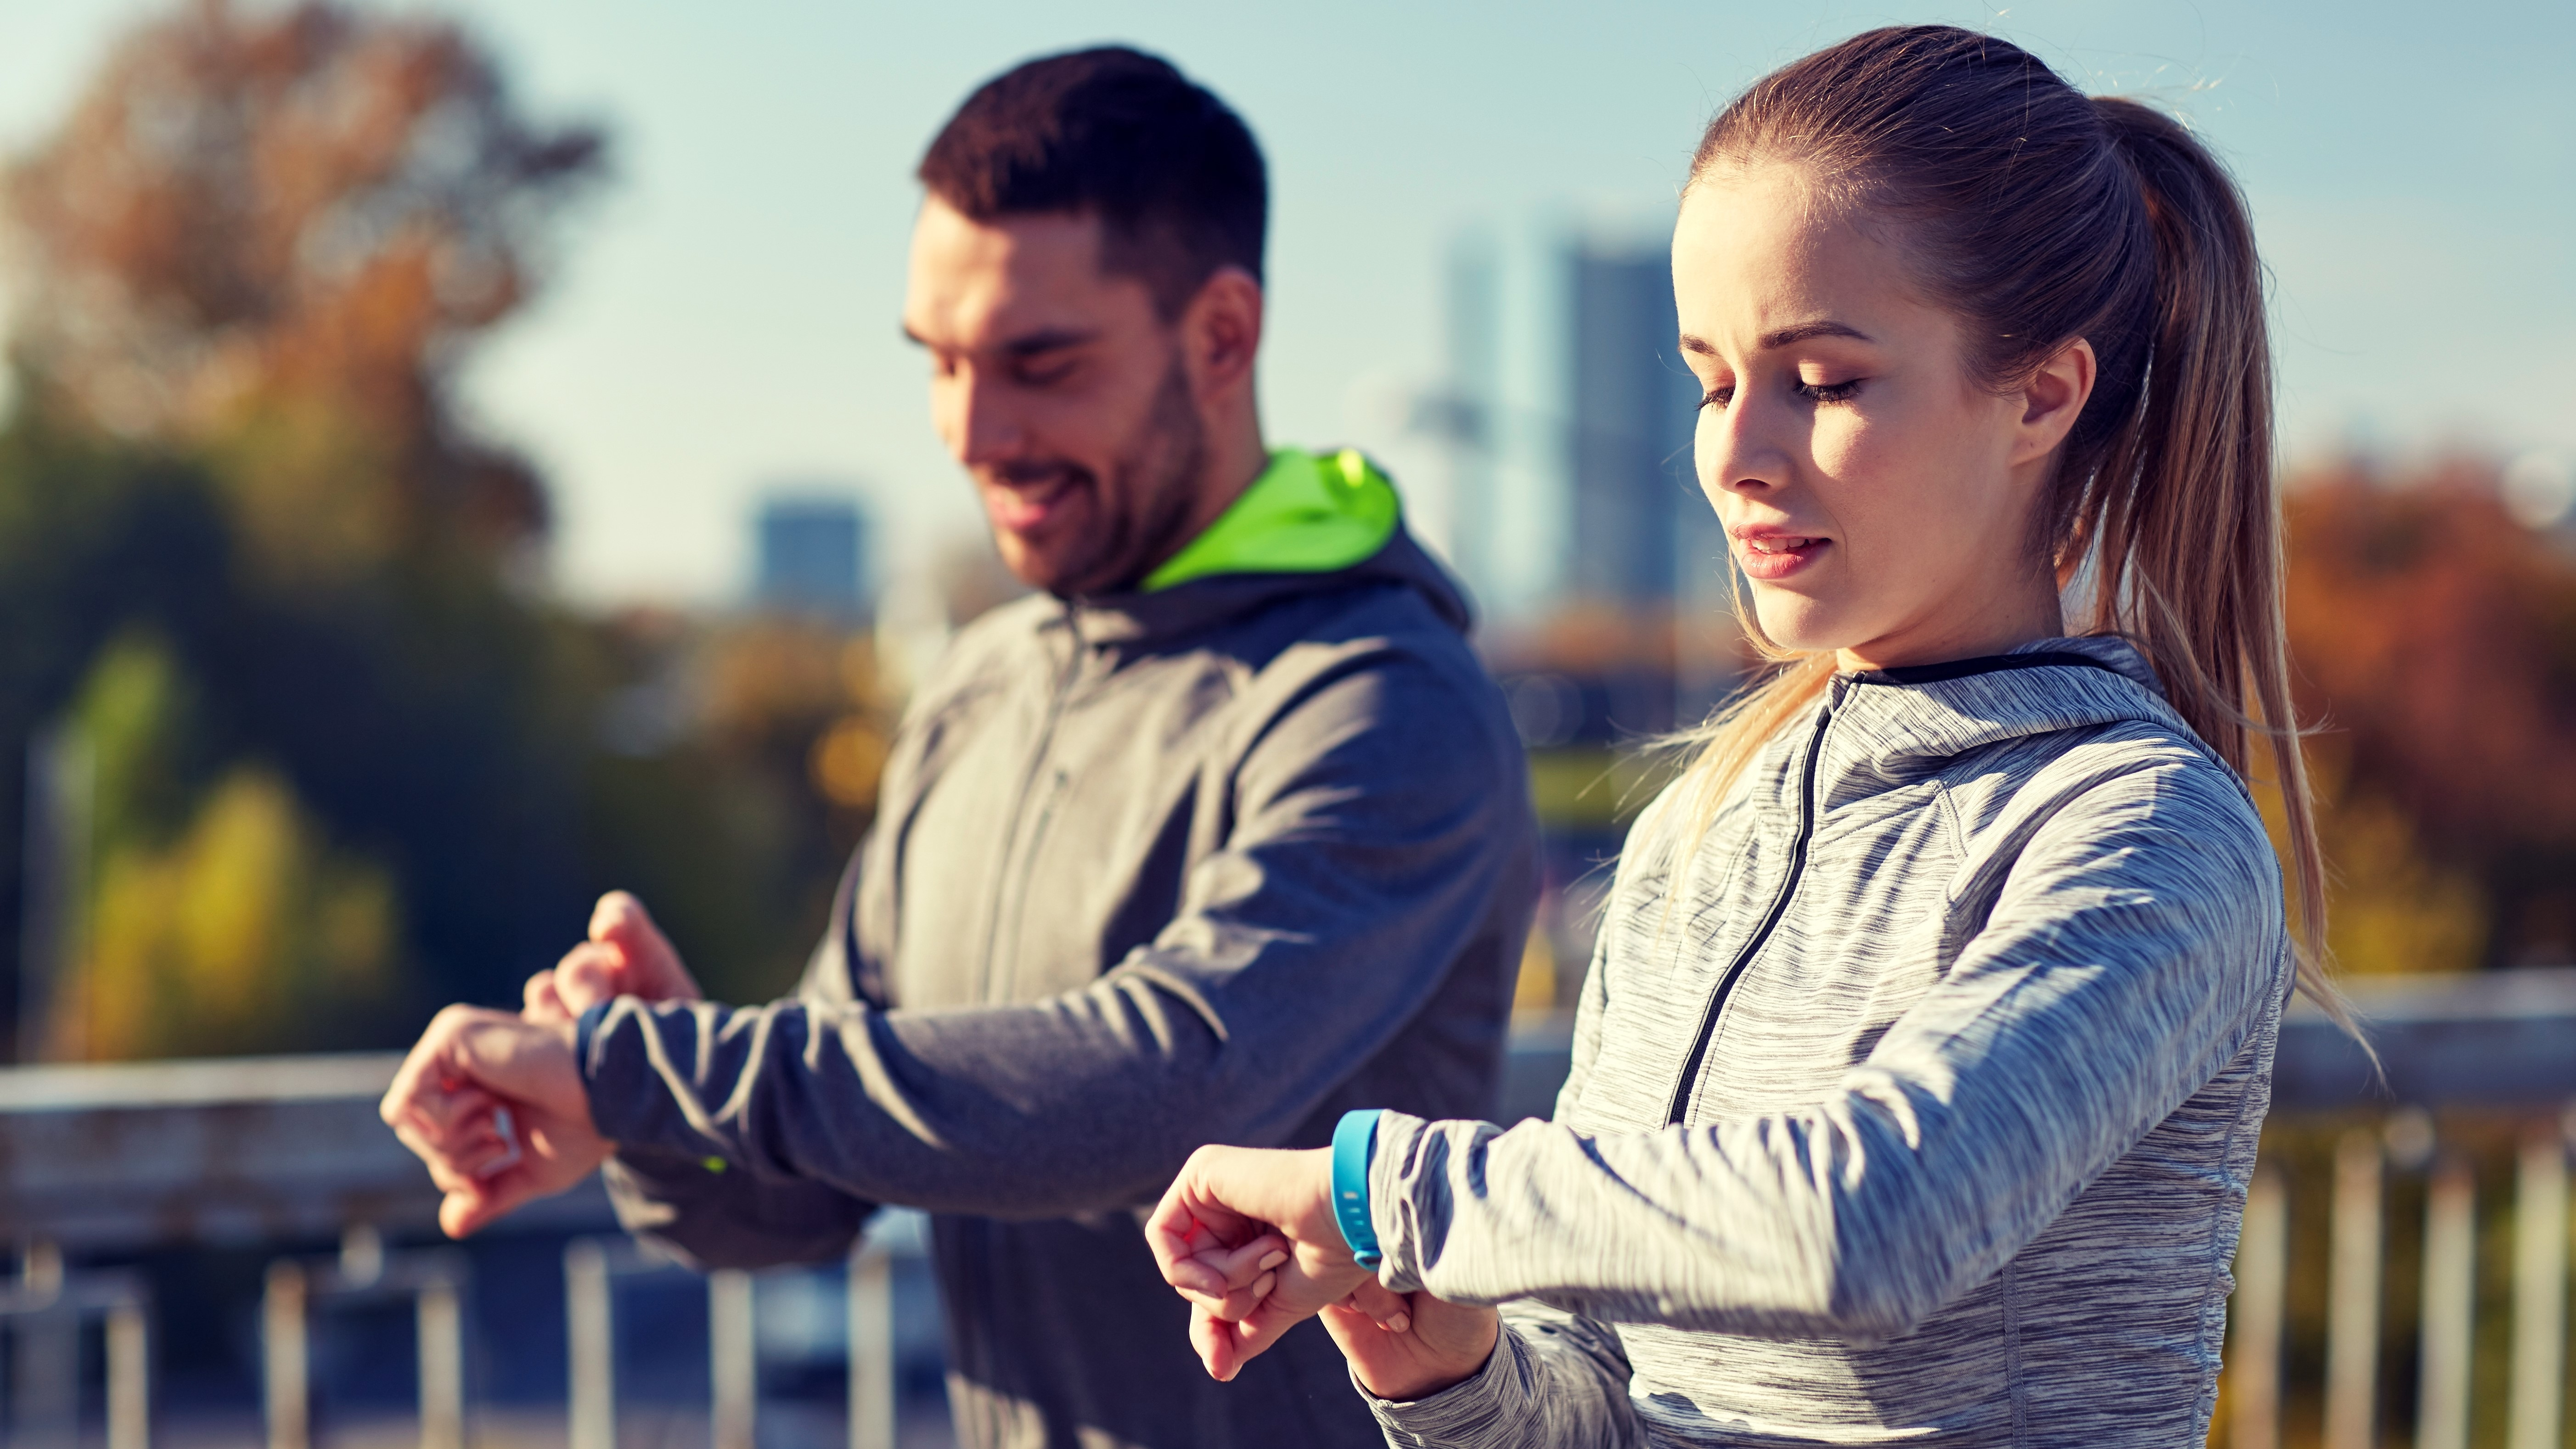 People using fitness trackers